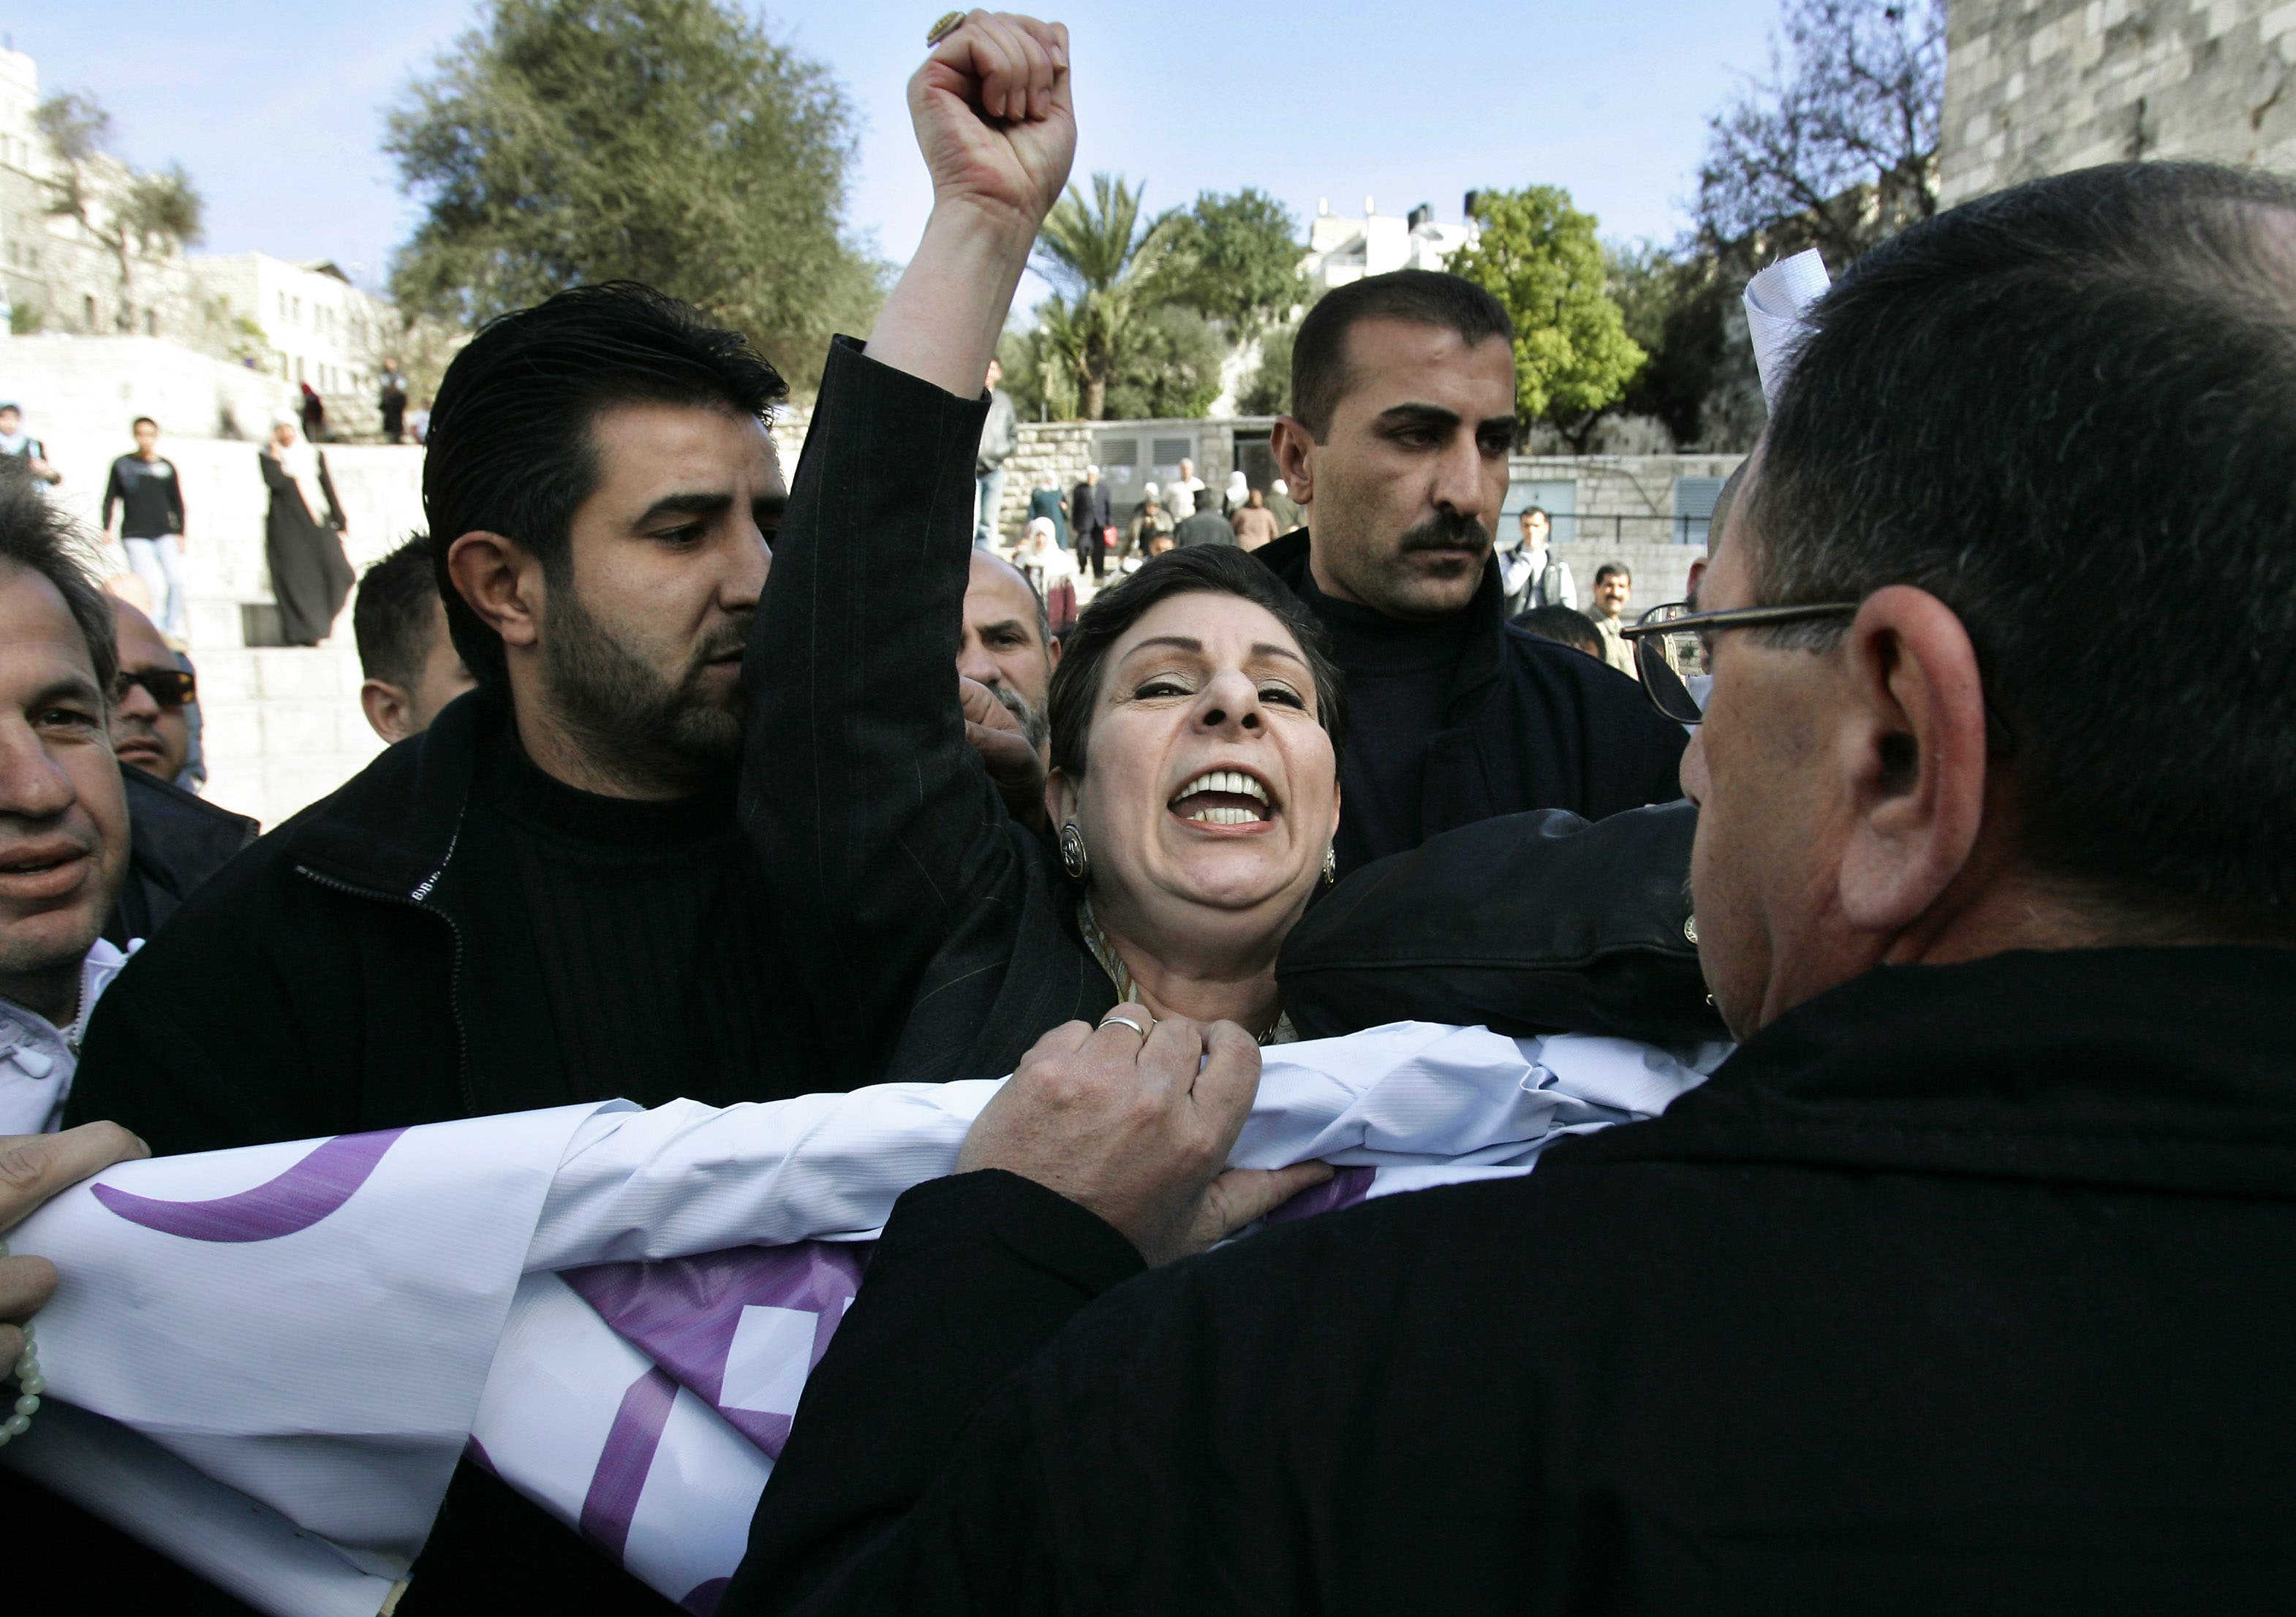 Palestinian parliamentary election candidate Hanan Ashrawi, center, from the Third Way party shouts as she and supporters scuffle with Israeli police officers, right, as they take her election banner from her during a campaign stop in front of Damascus Gate in Jerusalem's Old City, Tuesday, Jan. 3, 2006. AP